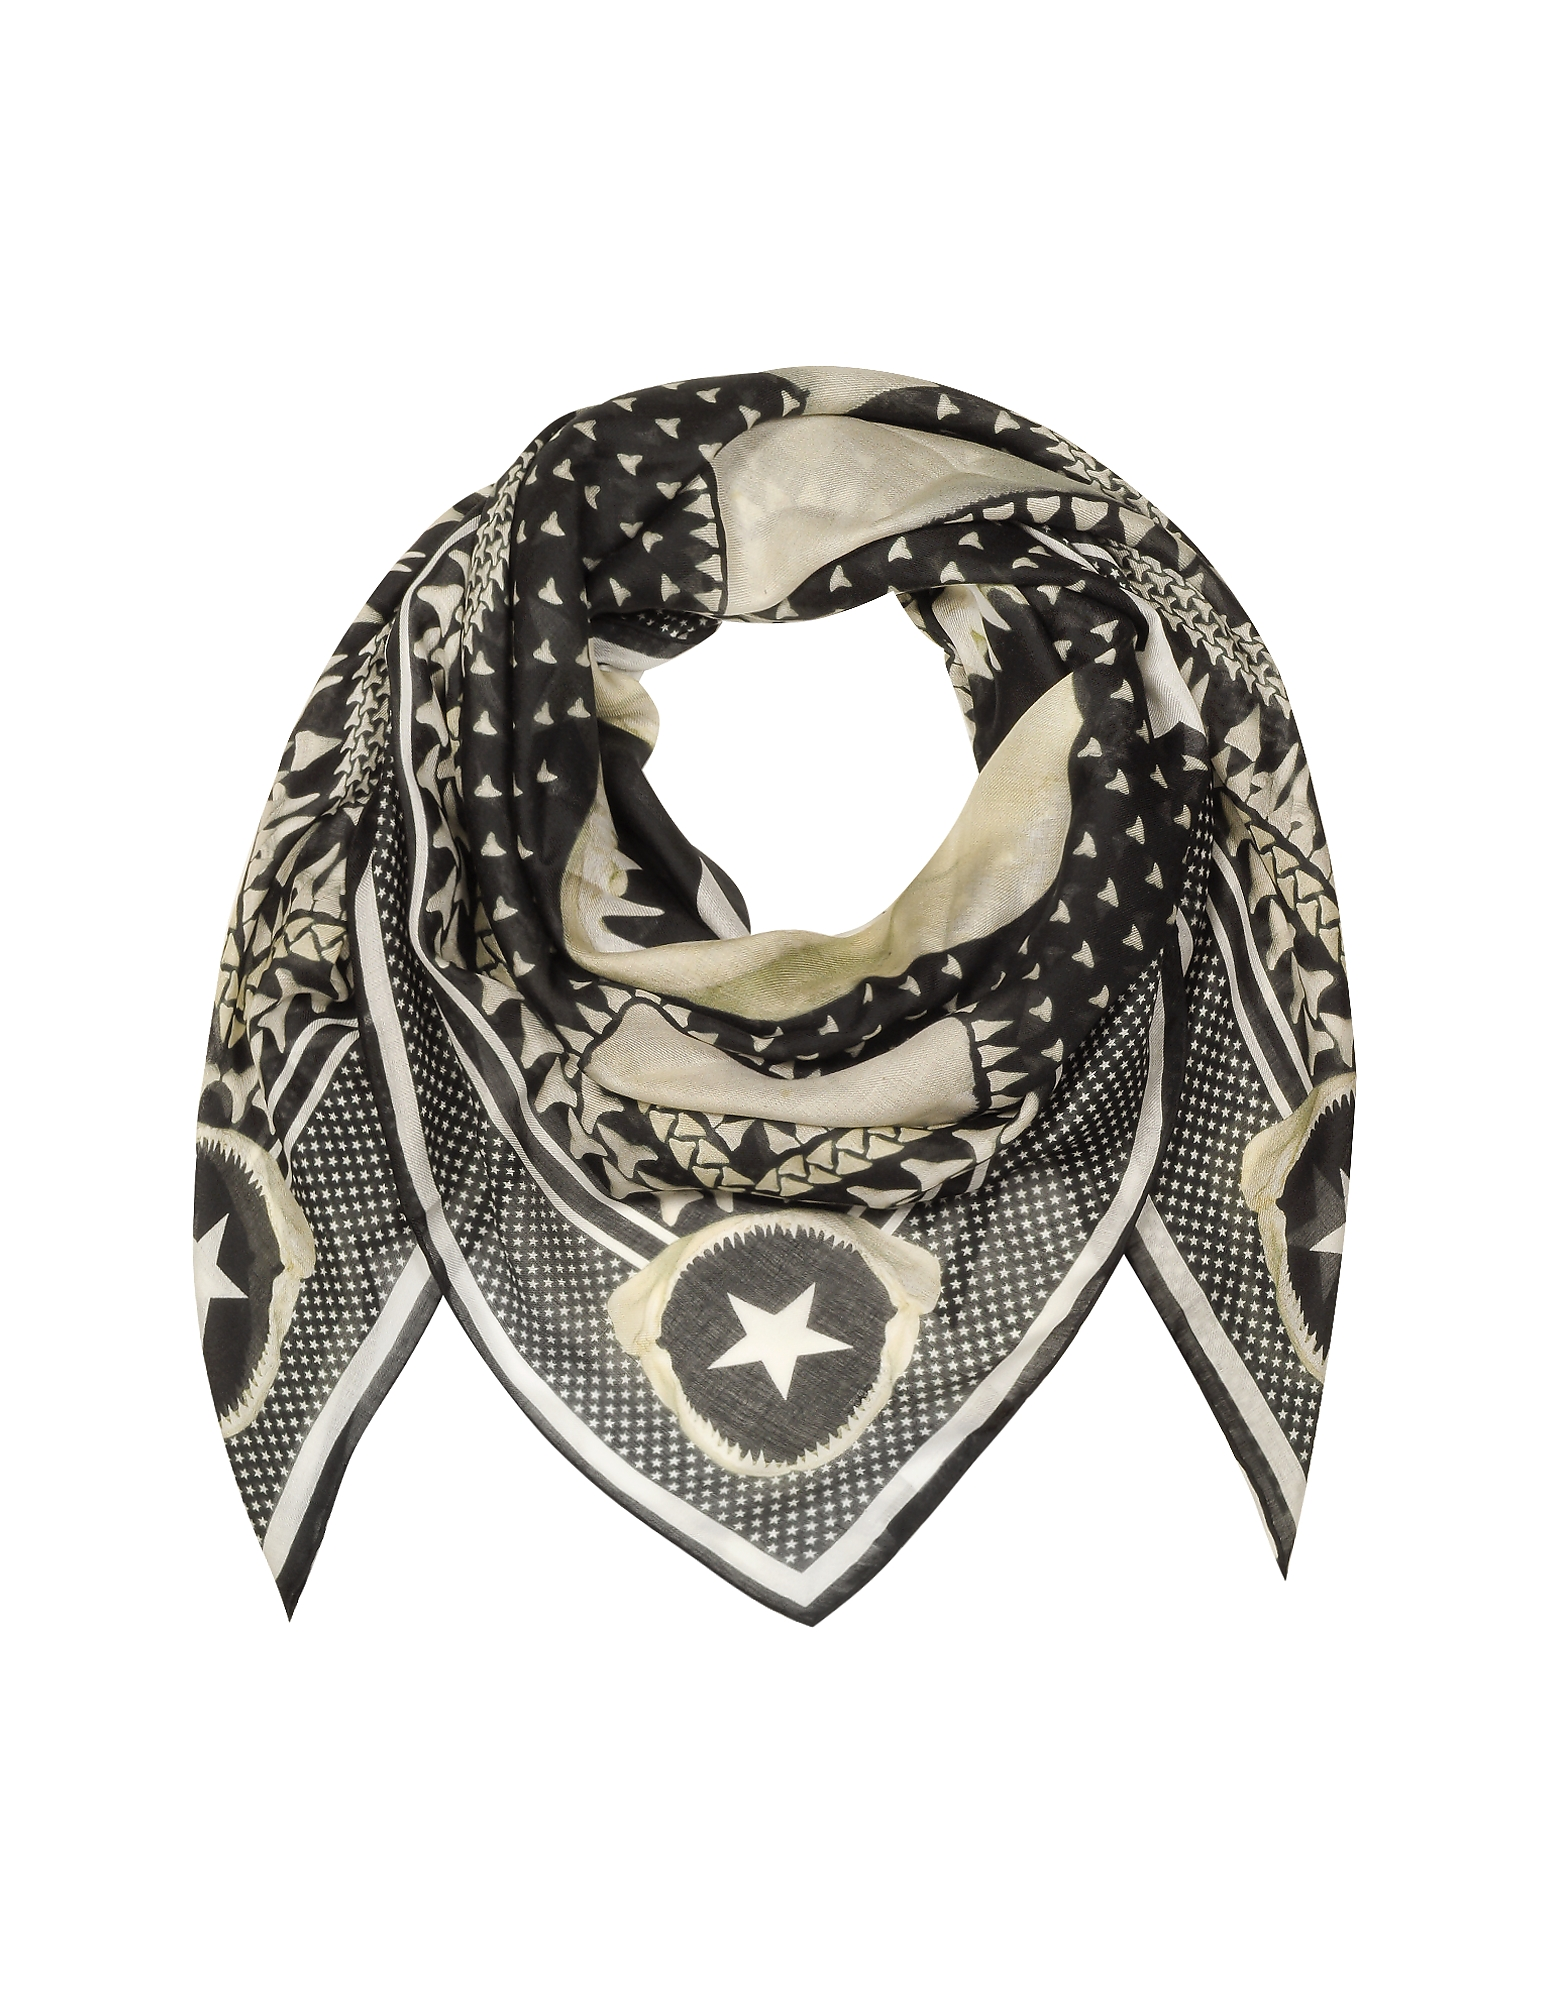 Givenchy Men's Scarves, Black and White Modal and Cashmere Wrap